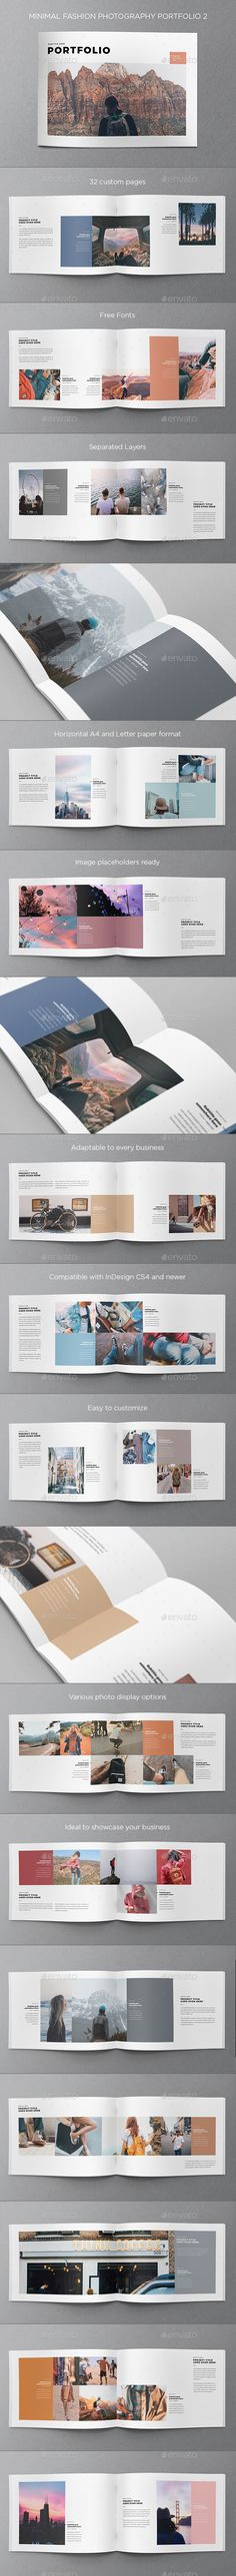 Minimal Fashion Photography Portfolio 2  — InDesign Template #brochure #photography • Download ➝ https://graphicriver.net/item/minimal-fashion-photography-portfolio-2/18017423?ref=pxcr